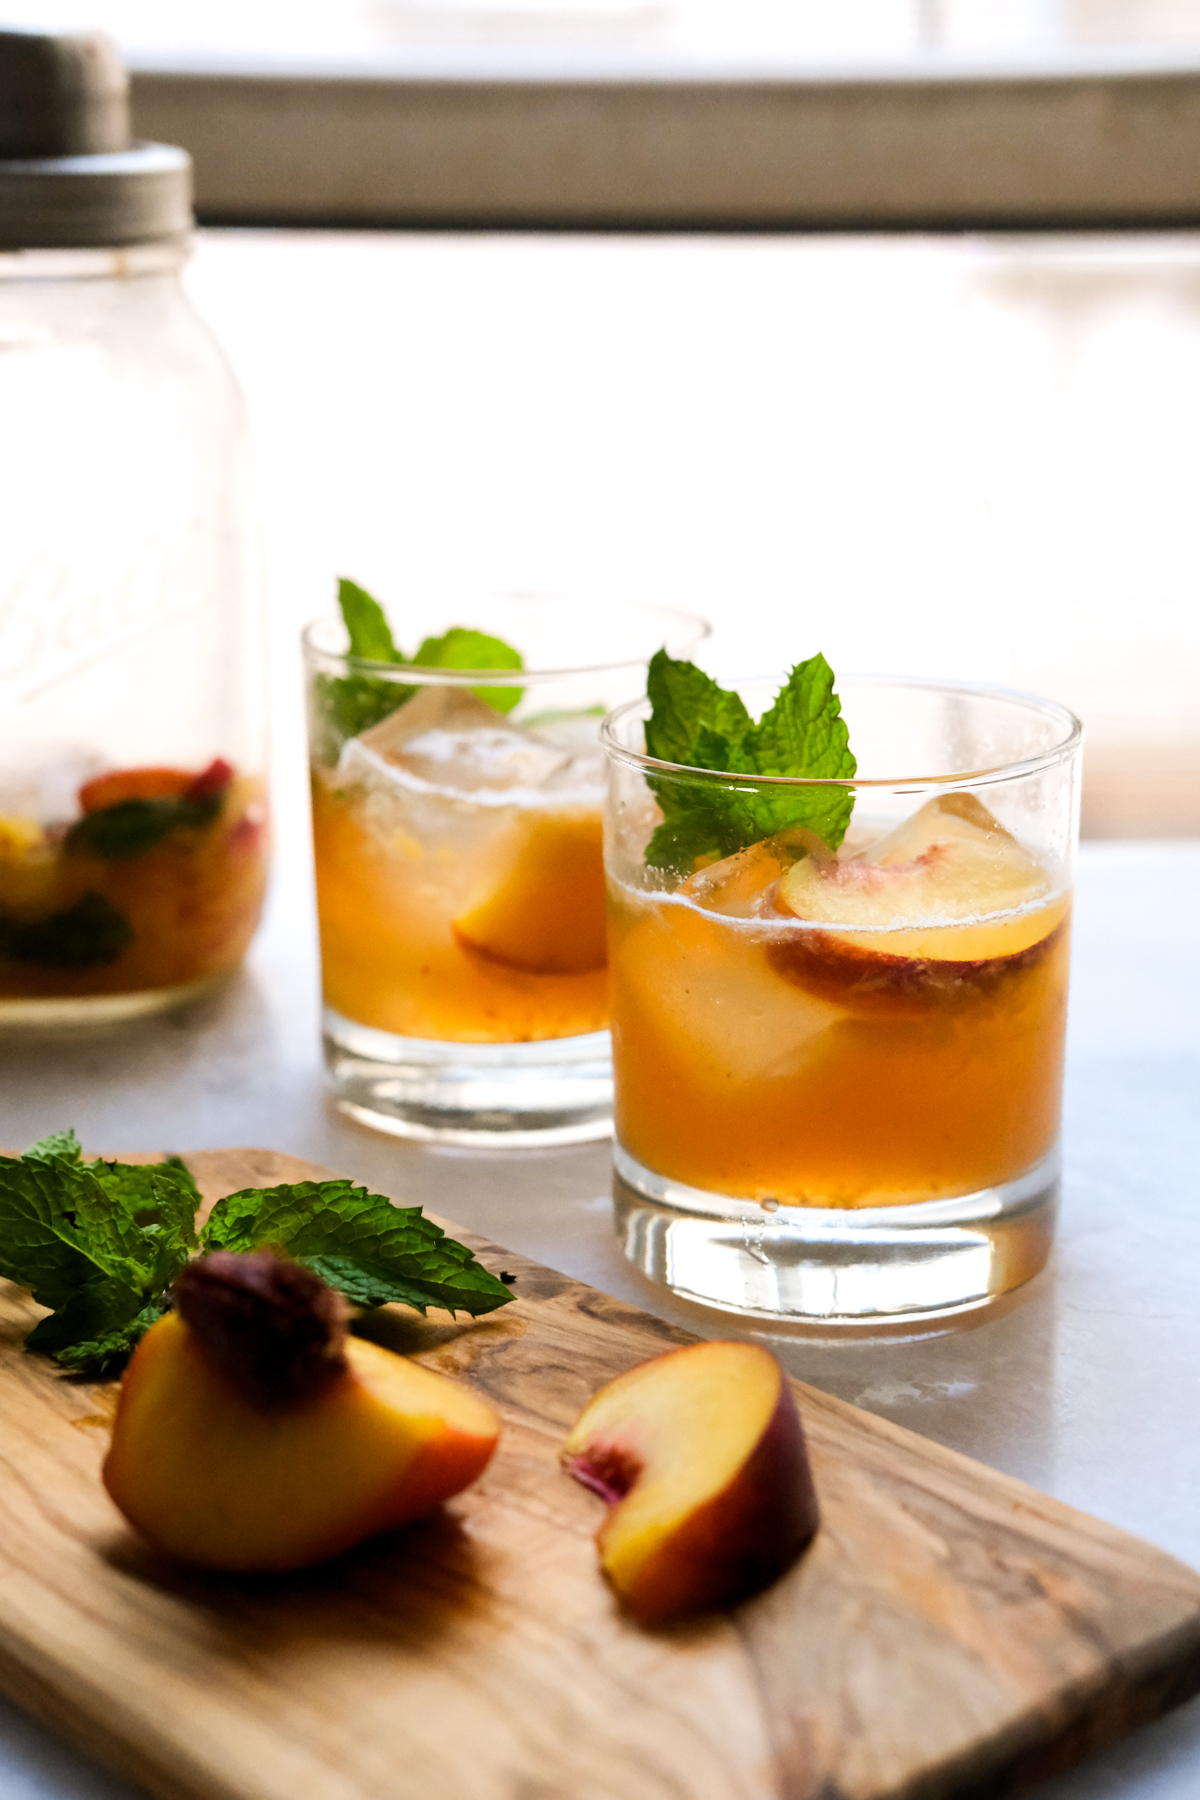 peach bourbon smash with cocktail shaker and peach slices